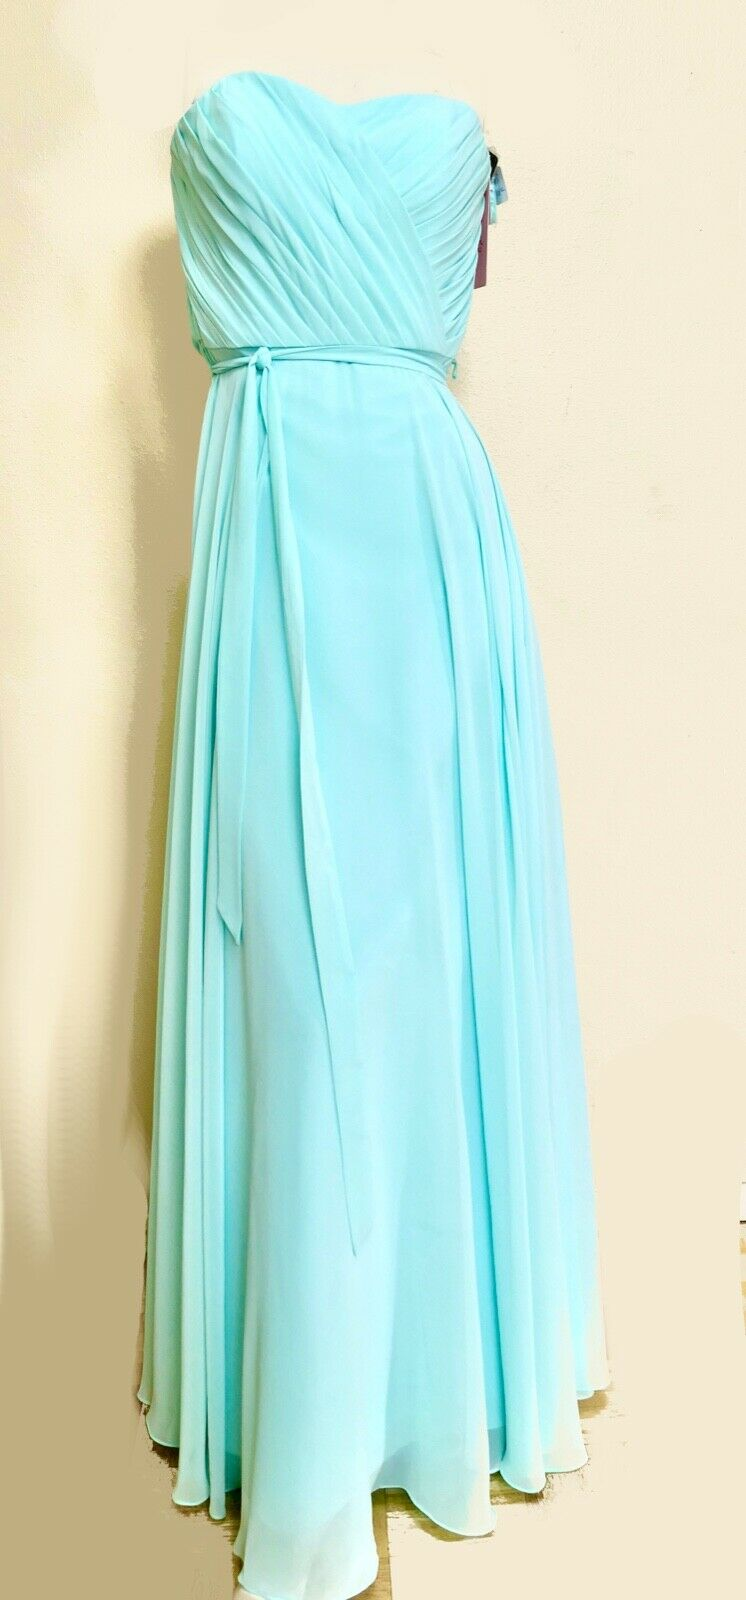 Nwt Mori Lee Gardner Mint Green Ball Gown Party Prom Formal Maxi Dress 14 L